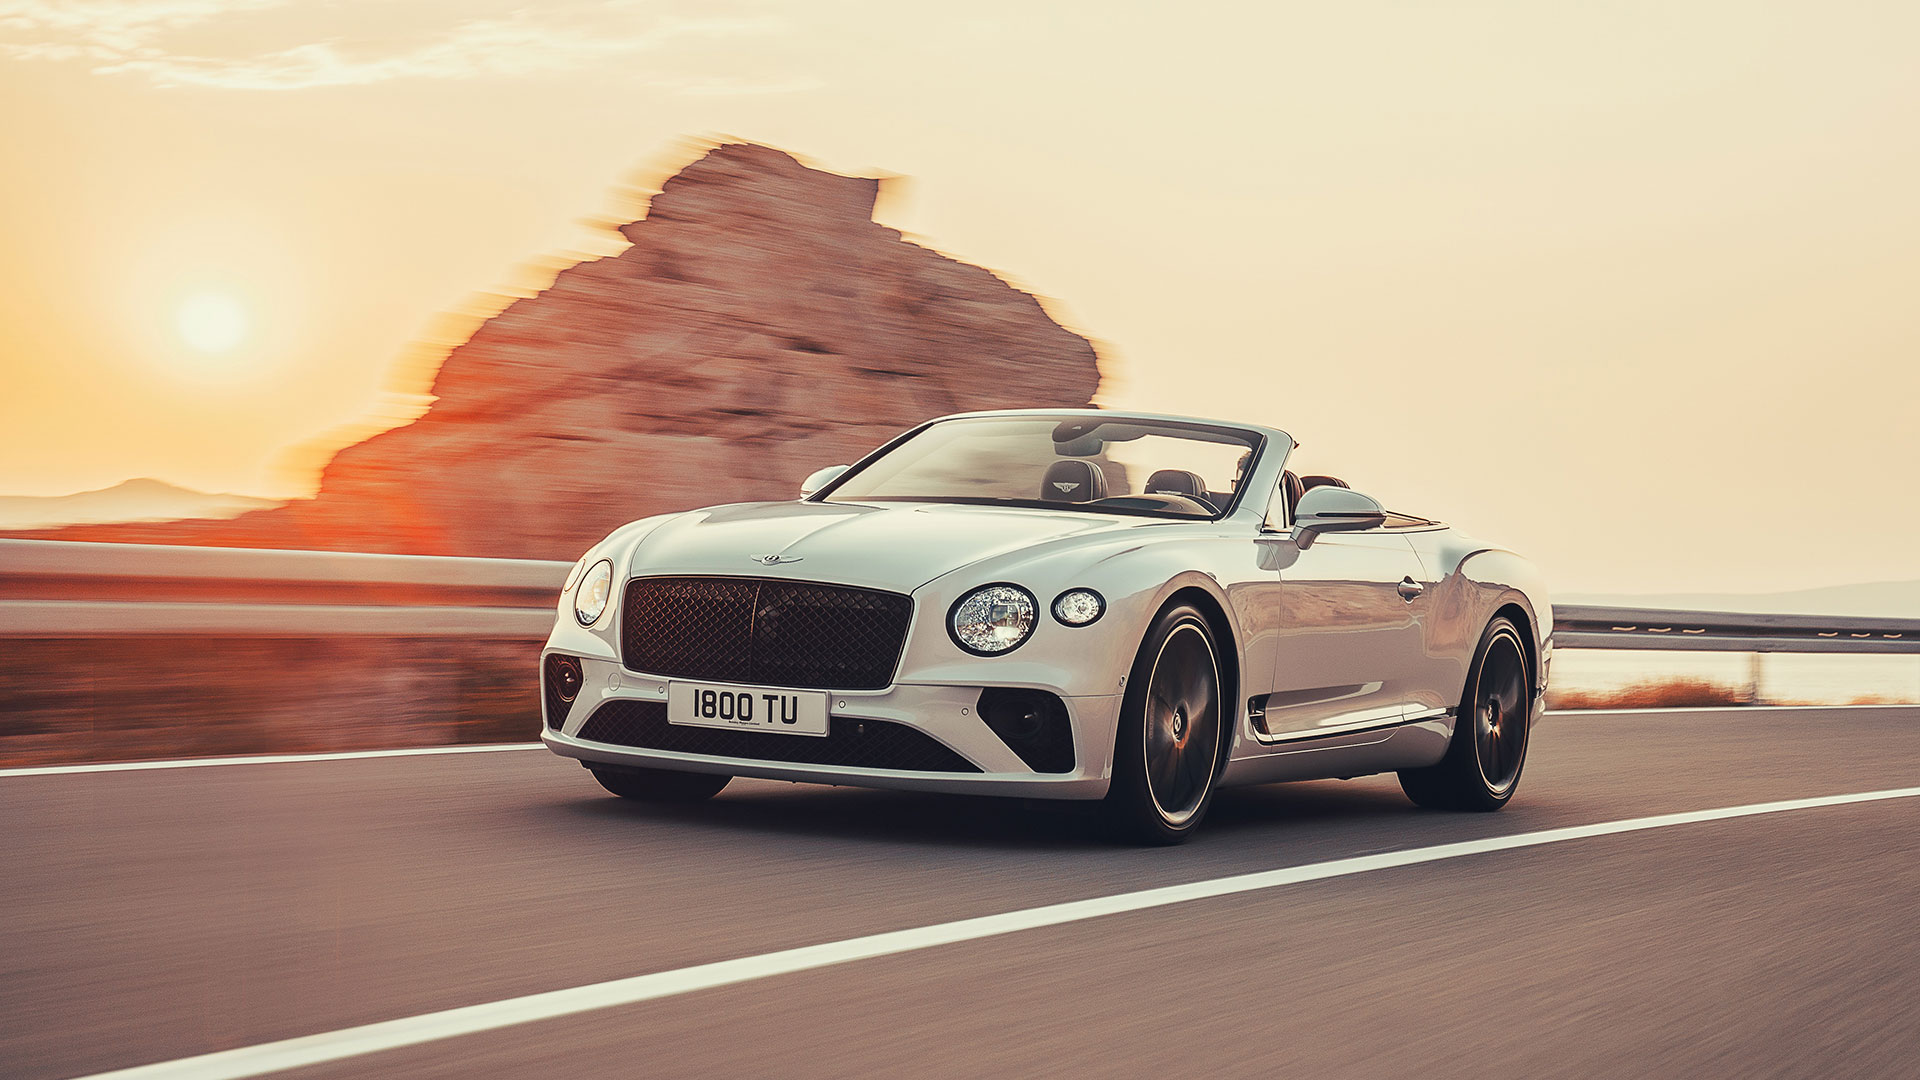 Black Bentley Continental Used Cars For Sale Autotrader Uk